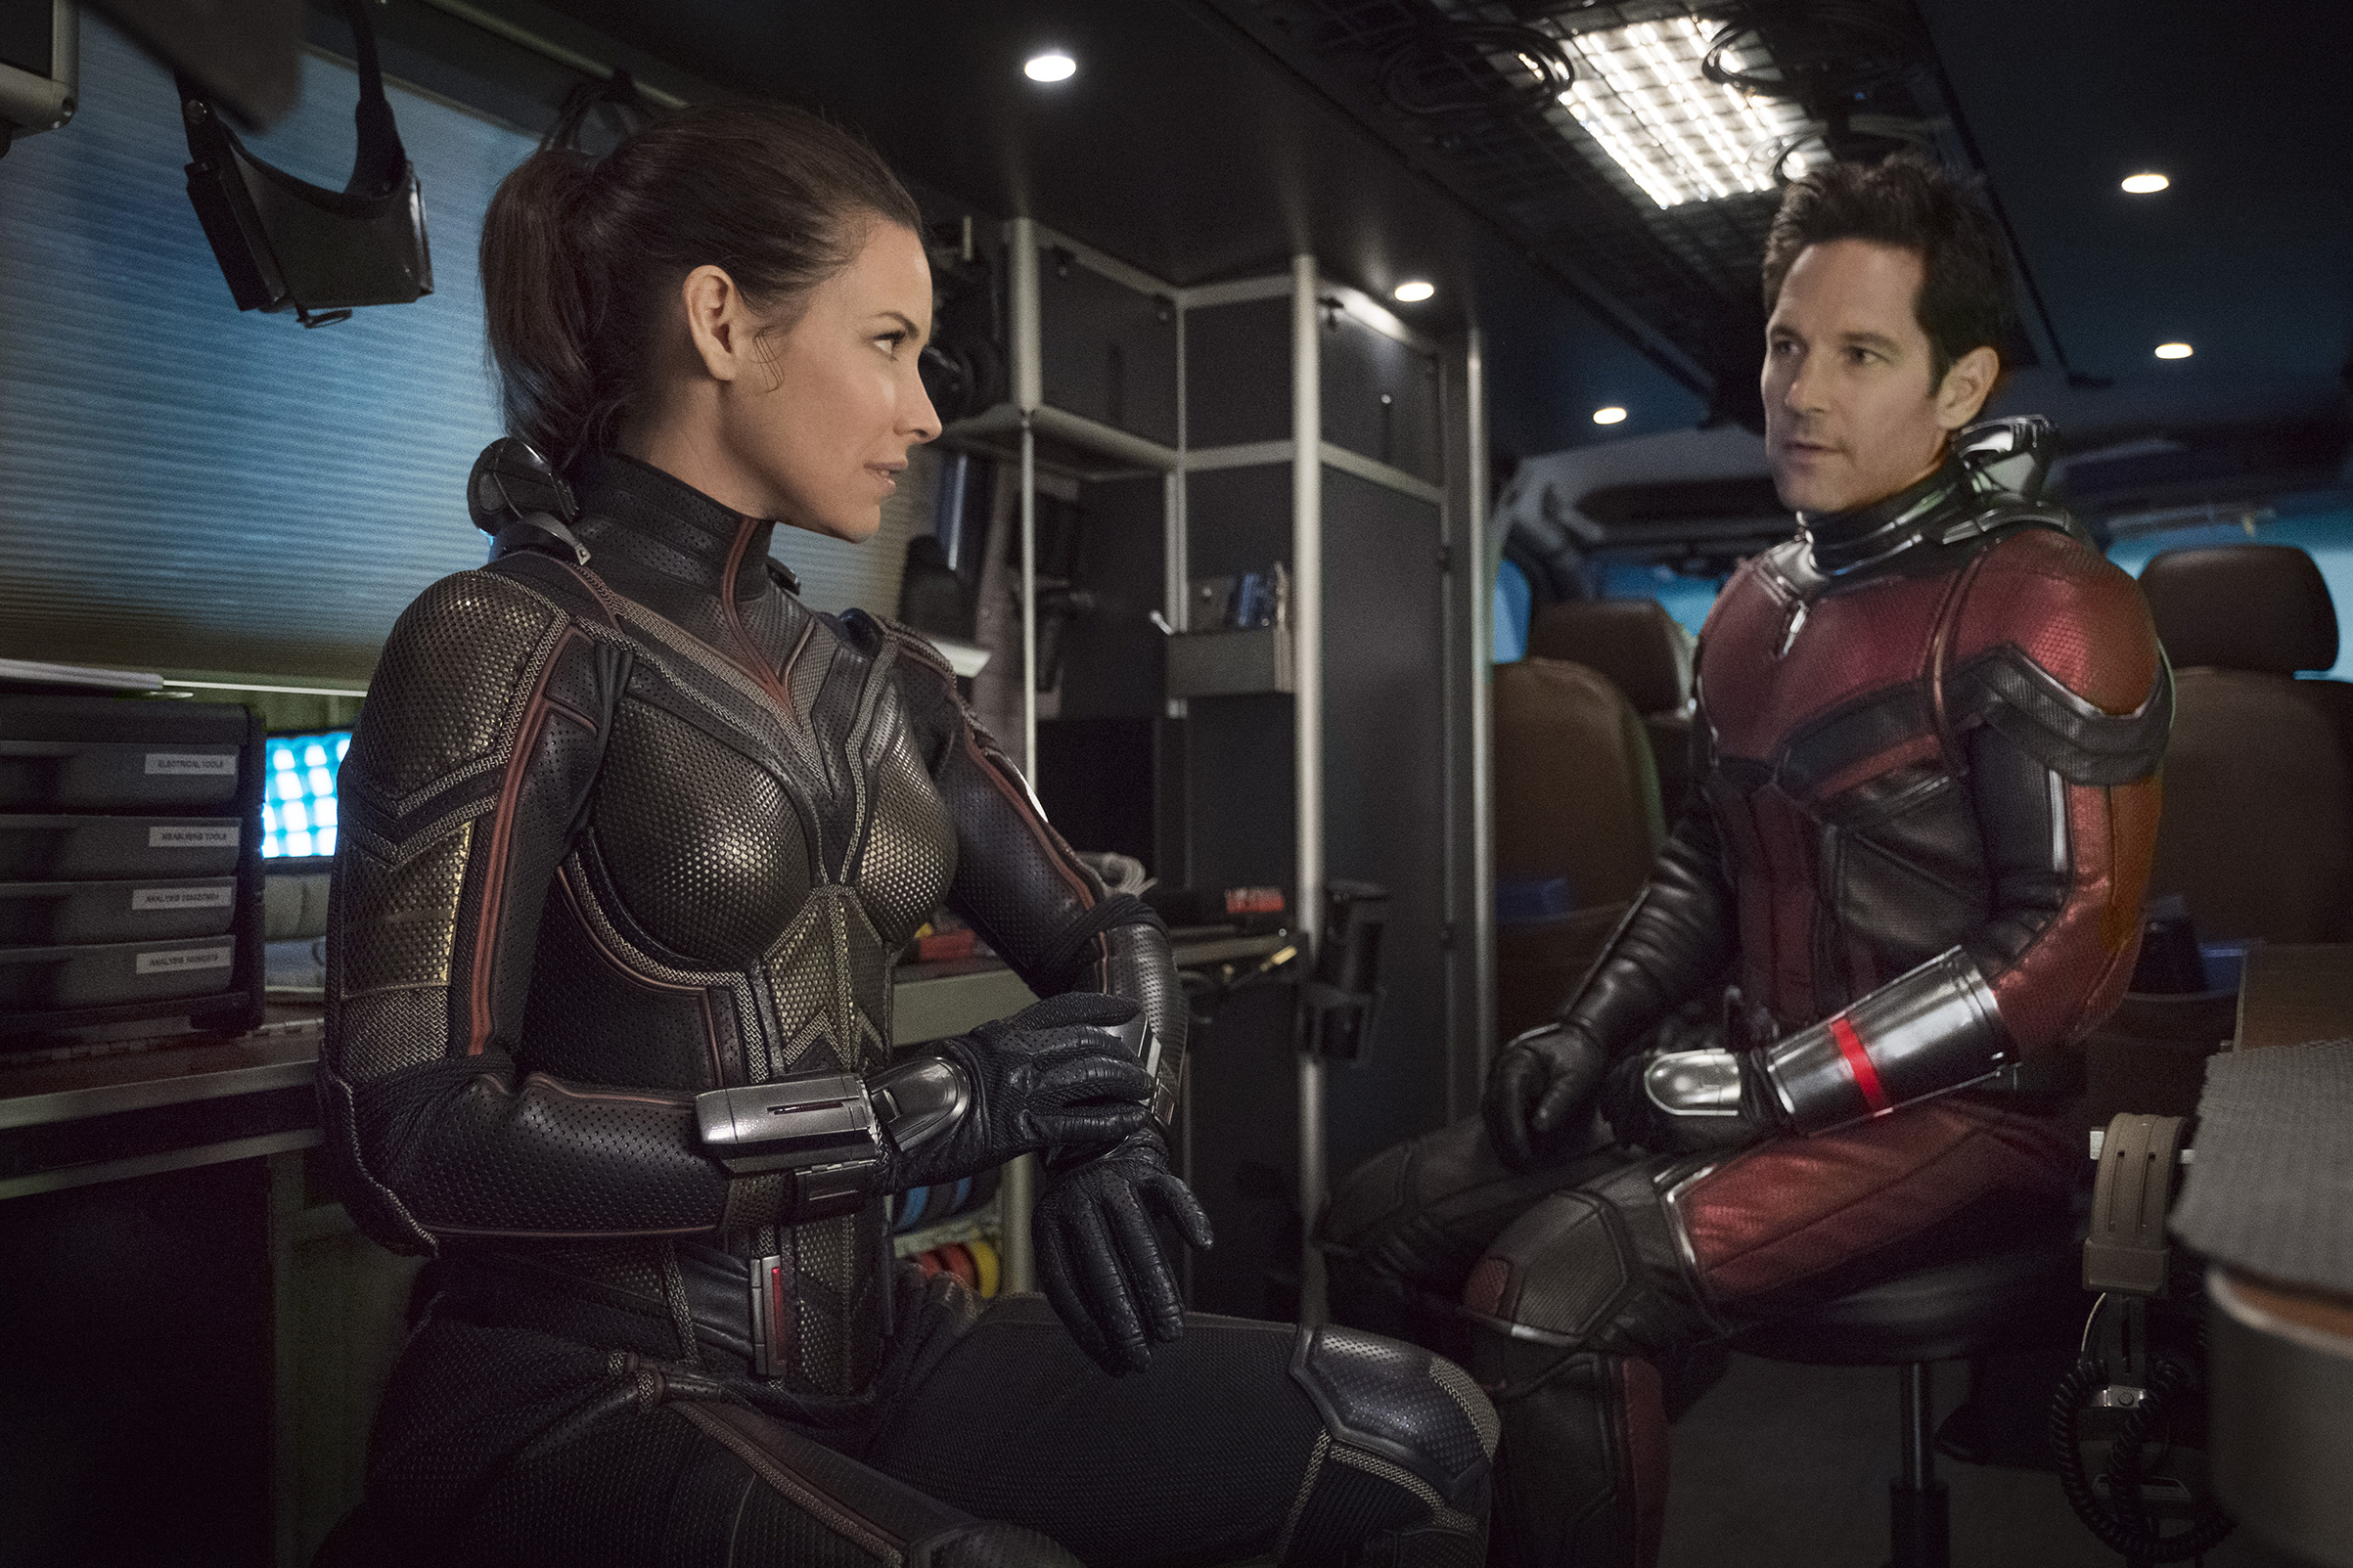 Evangeline Lilly and Paul Rudd in the film.